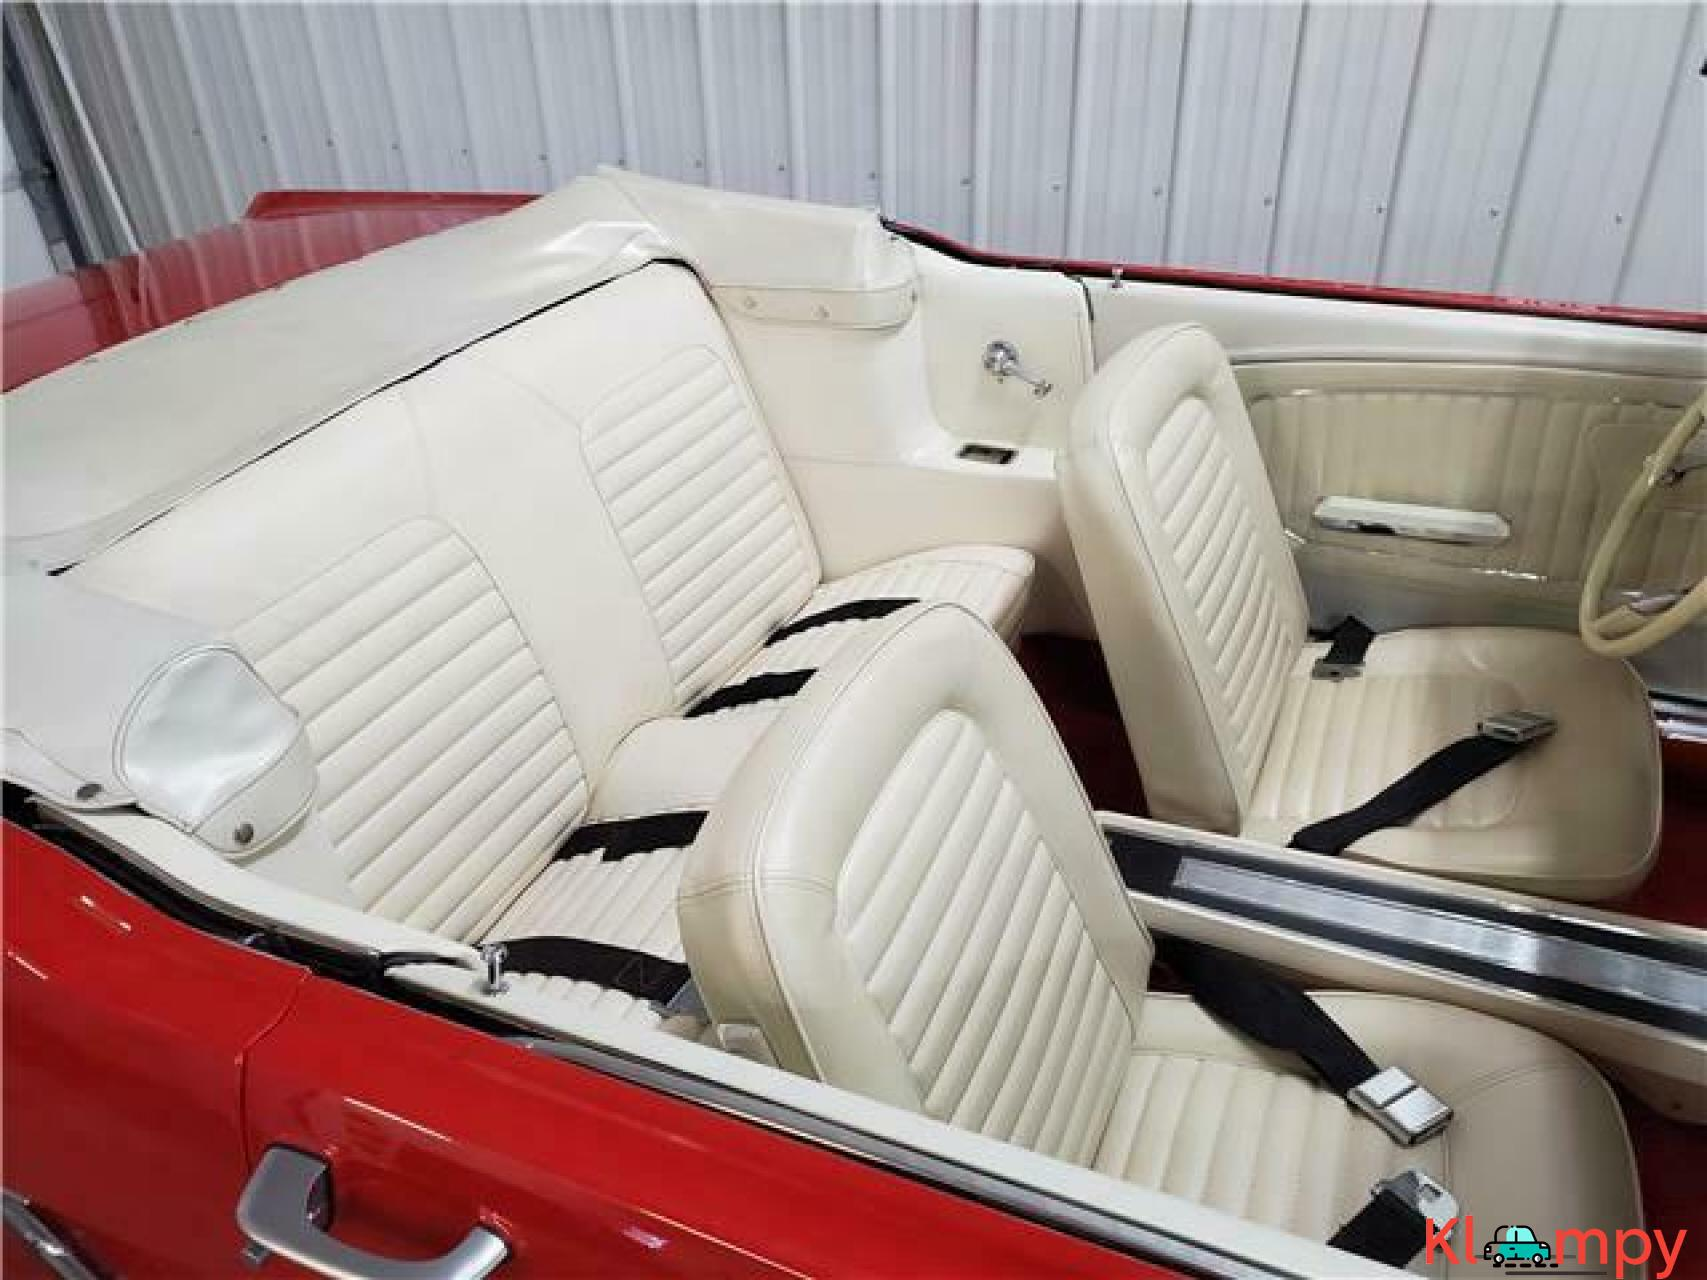 1965 Ford Mustang Rear Wheel Drive - 7/20